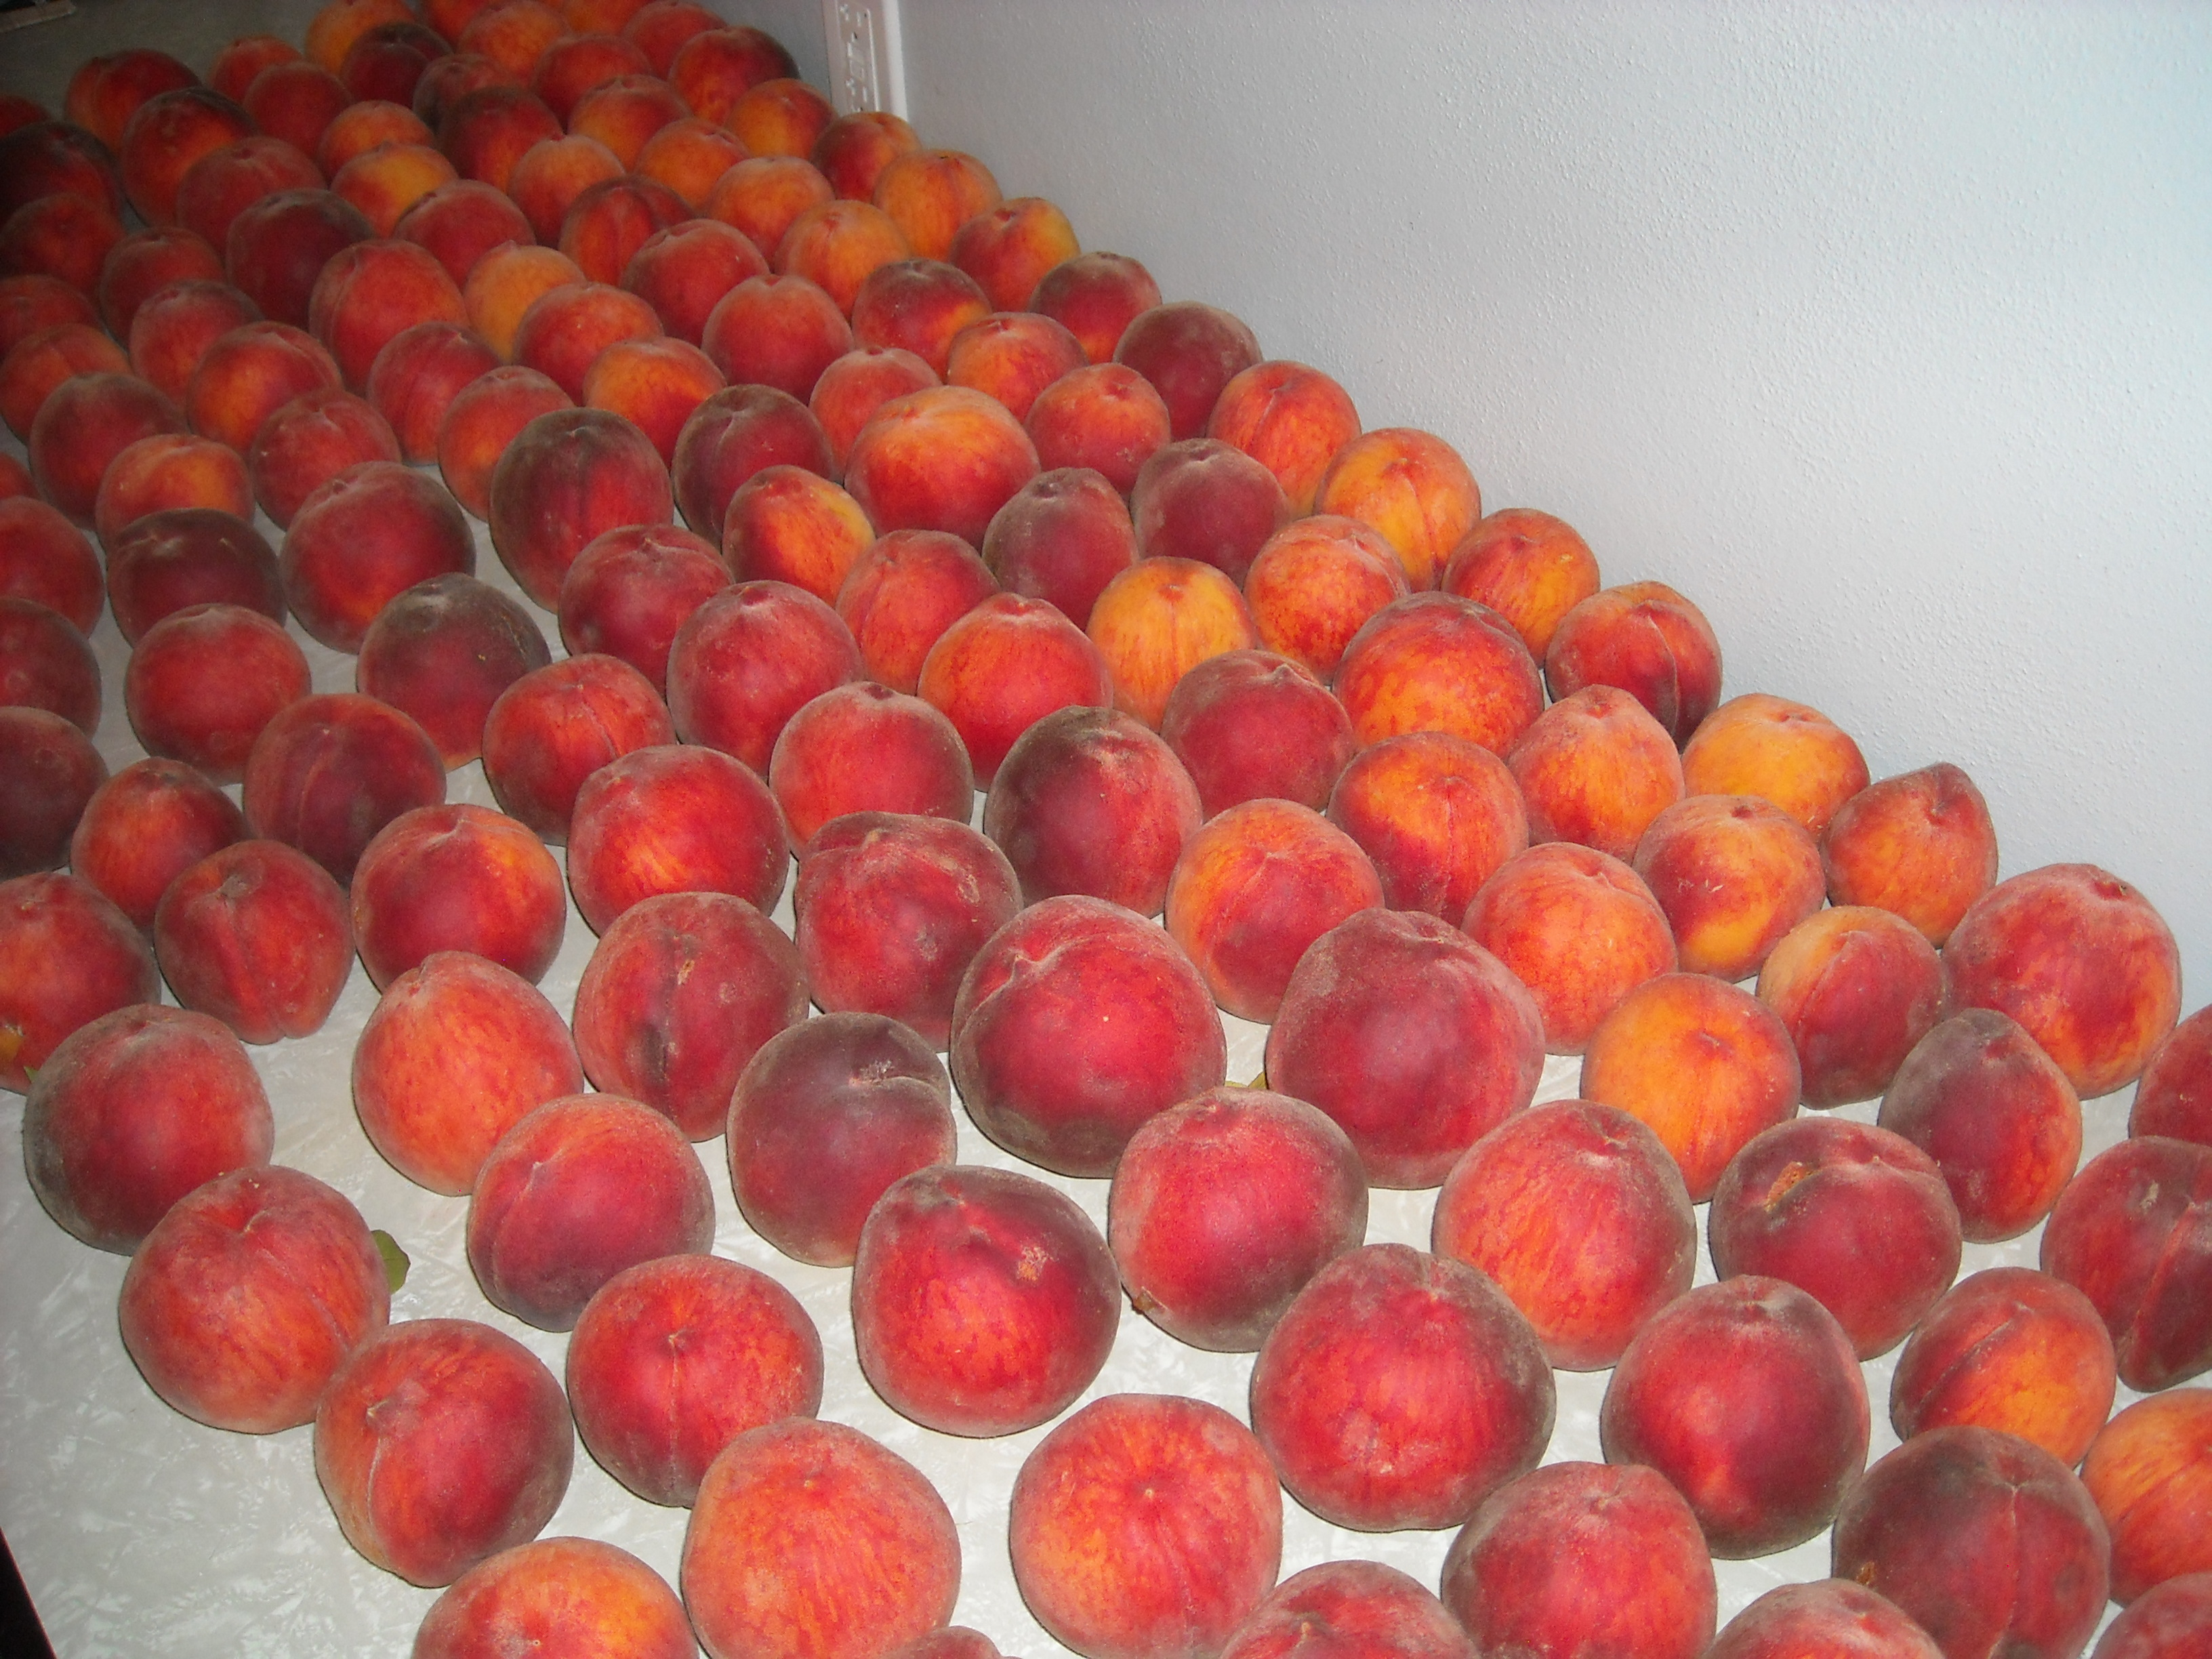 Fresh peaches on the countertop.